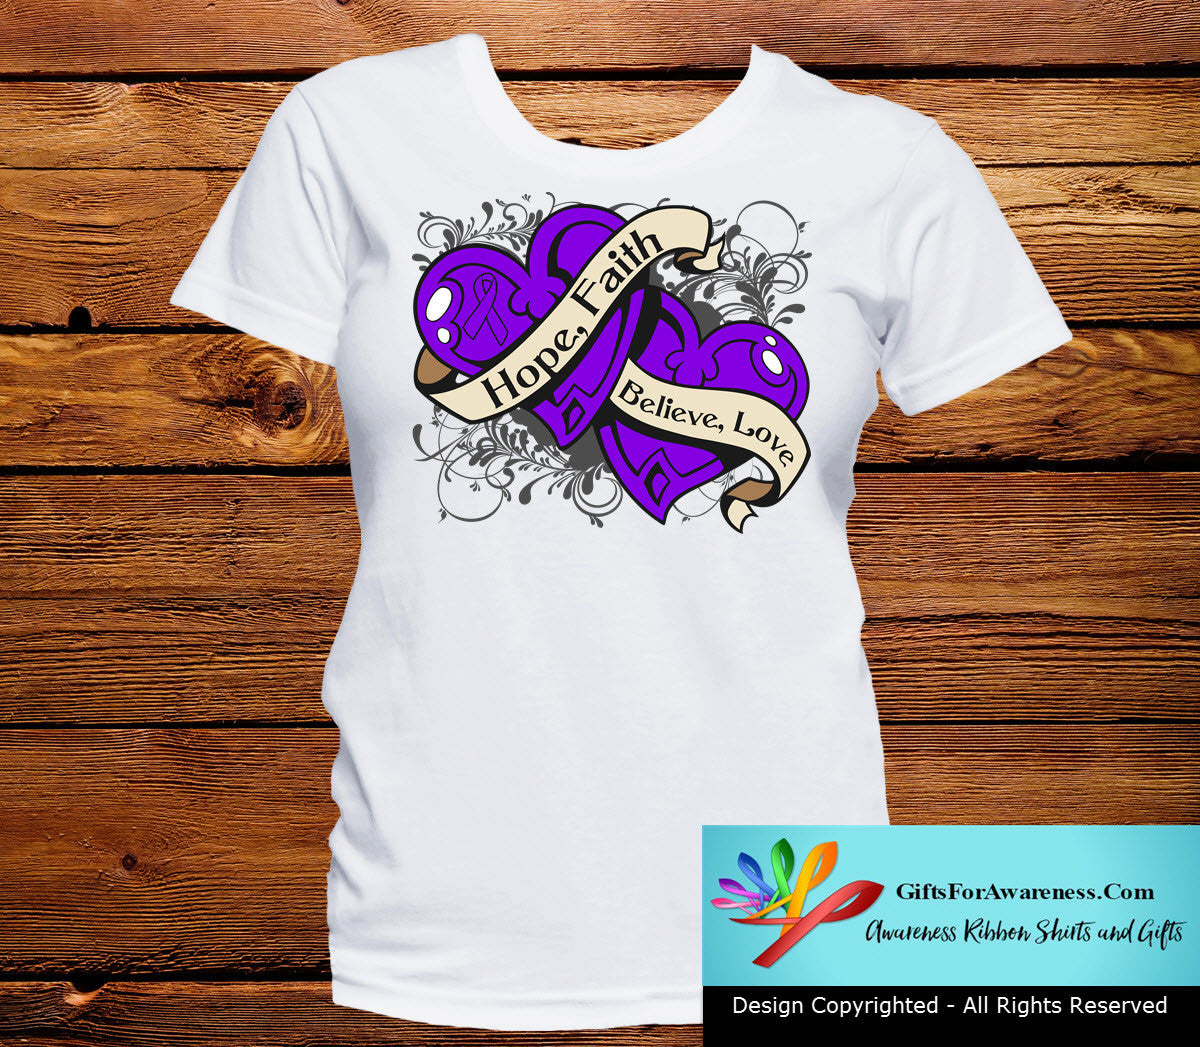 Pancreatic Cancer Hope Believe Faith Love Shirts - GiftsForAwareness